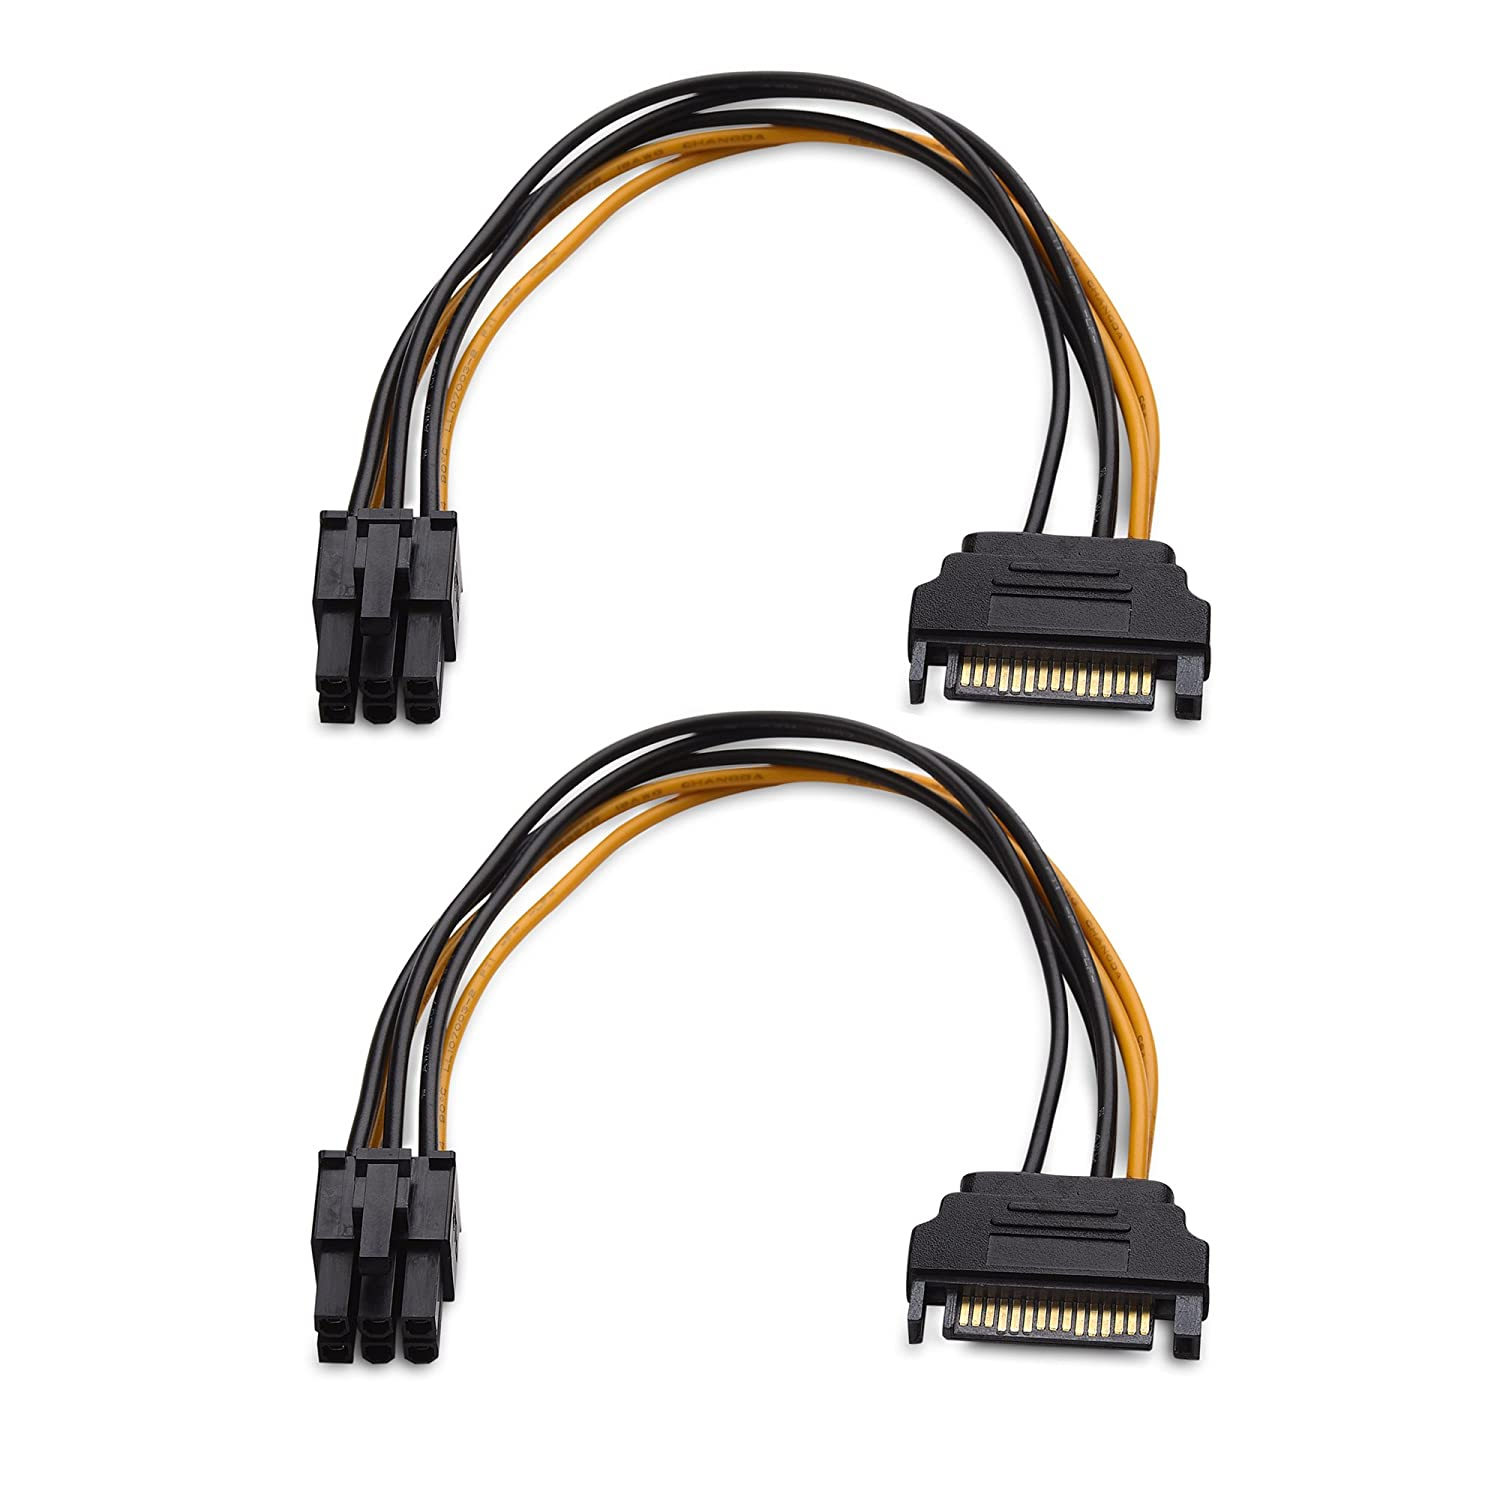 6 pin to 3x SATA  DRIVER POWER cable